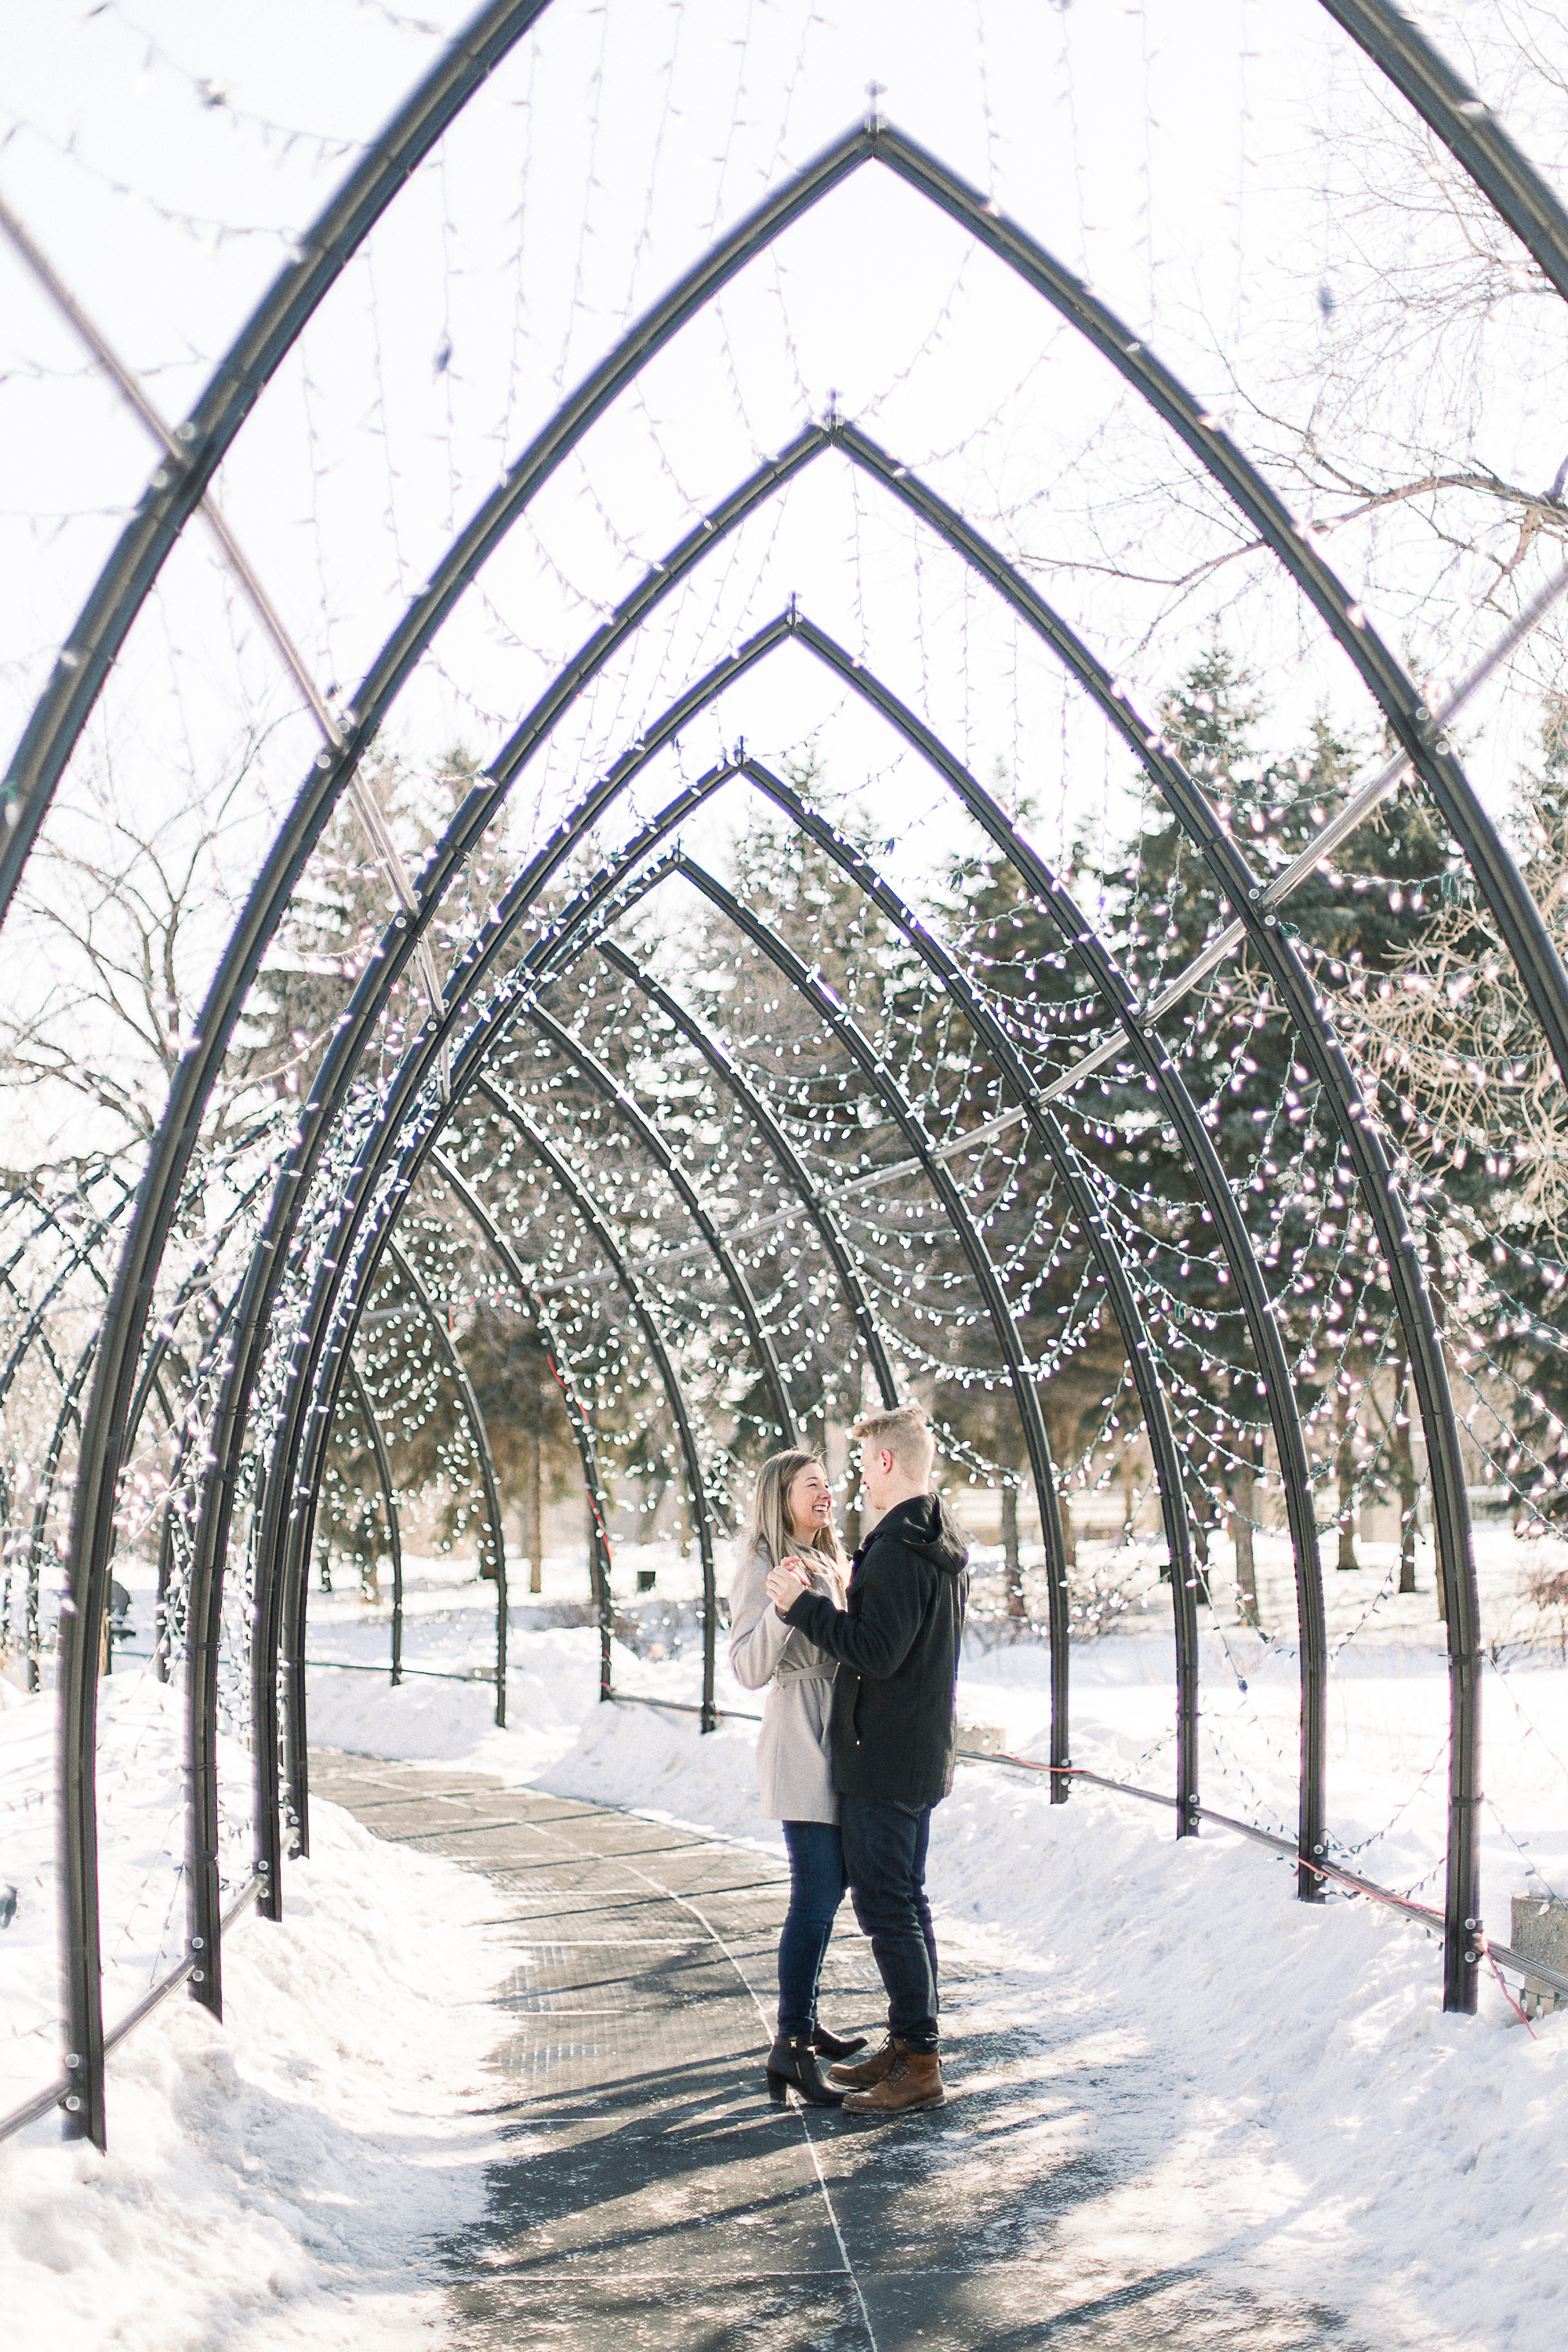 The-Forks-Engagement-Session-Location-Ideas-Winnipeg-Wedding-Photographer